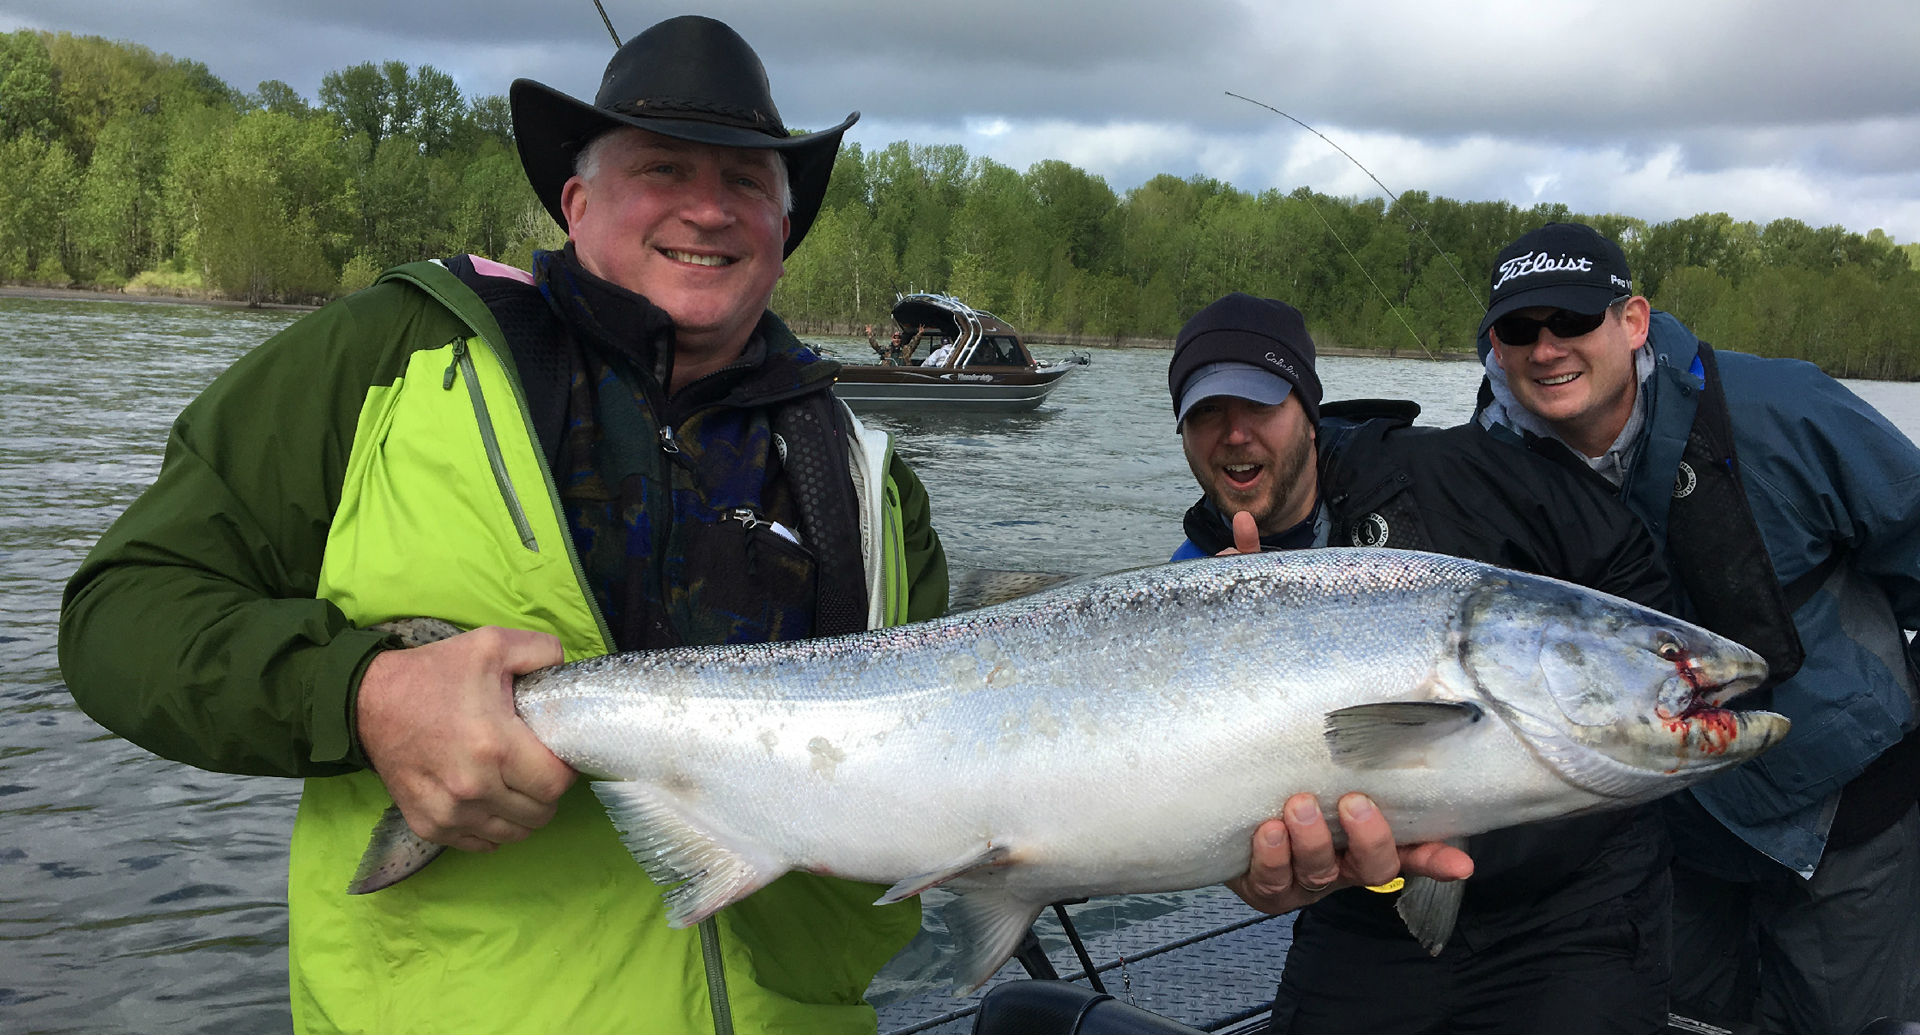 Adjust to challenging conditions for willamette spring for Siletz river fishing report